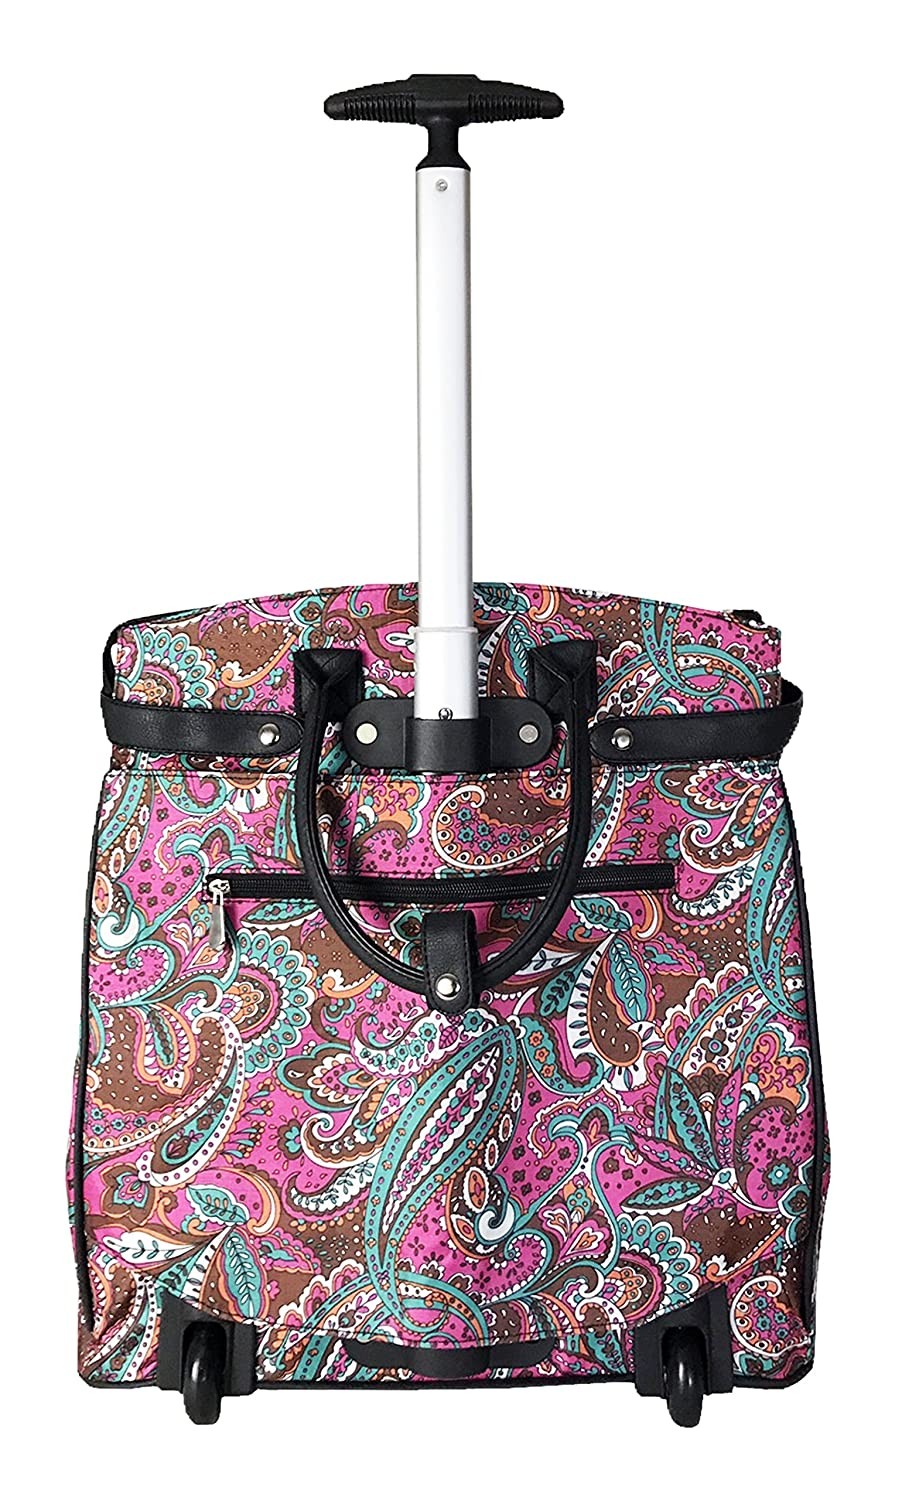 19 Computer//laptop Bag Tote Duffel Rolling Wheel Padded Case Silver Zebra Private